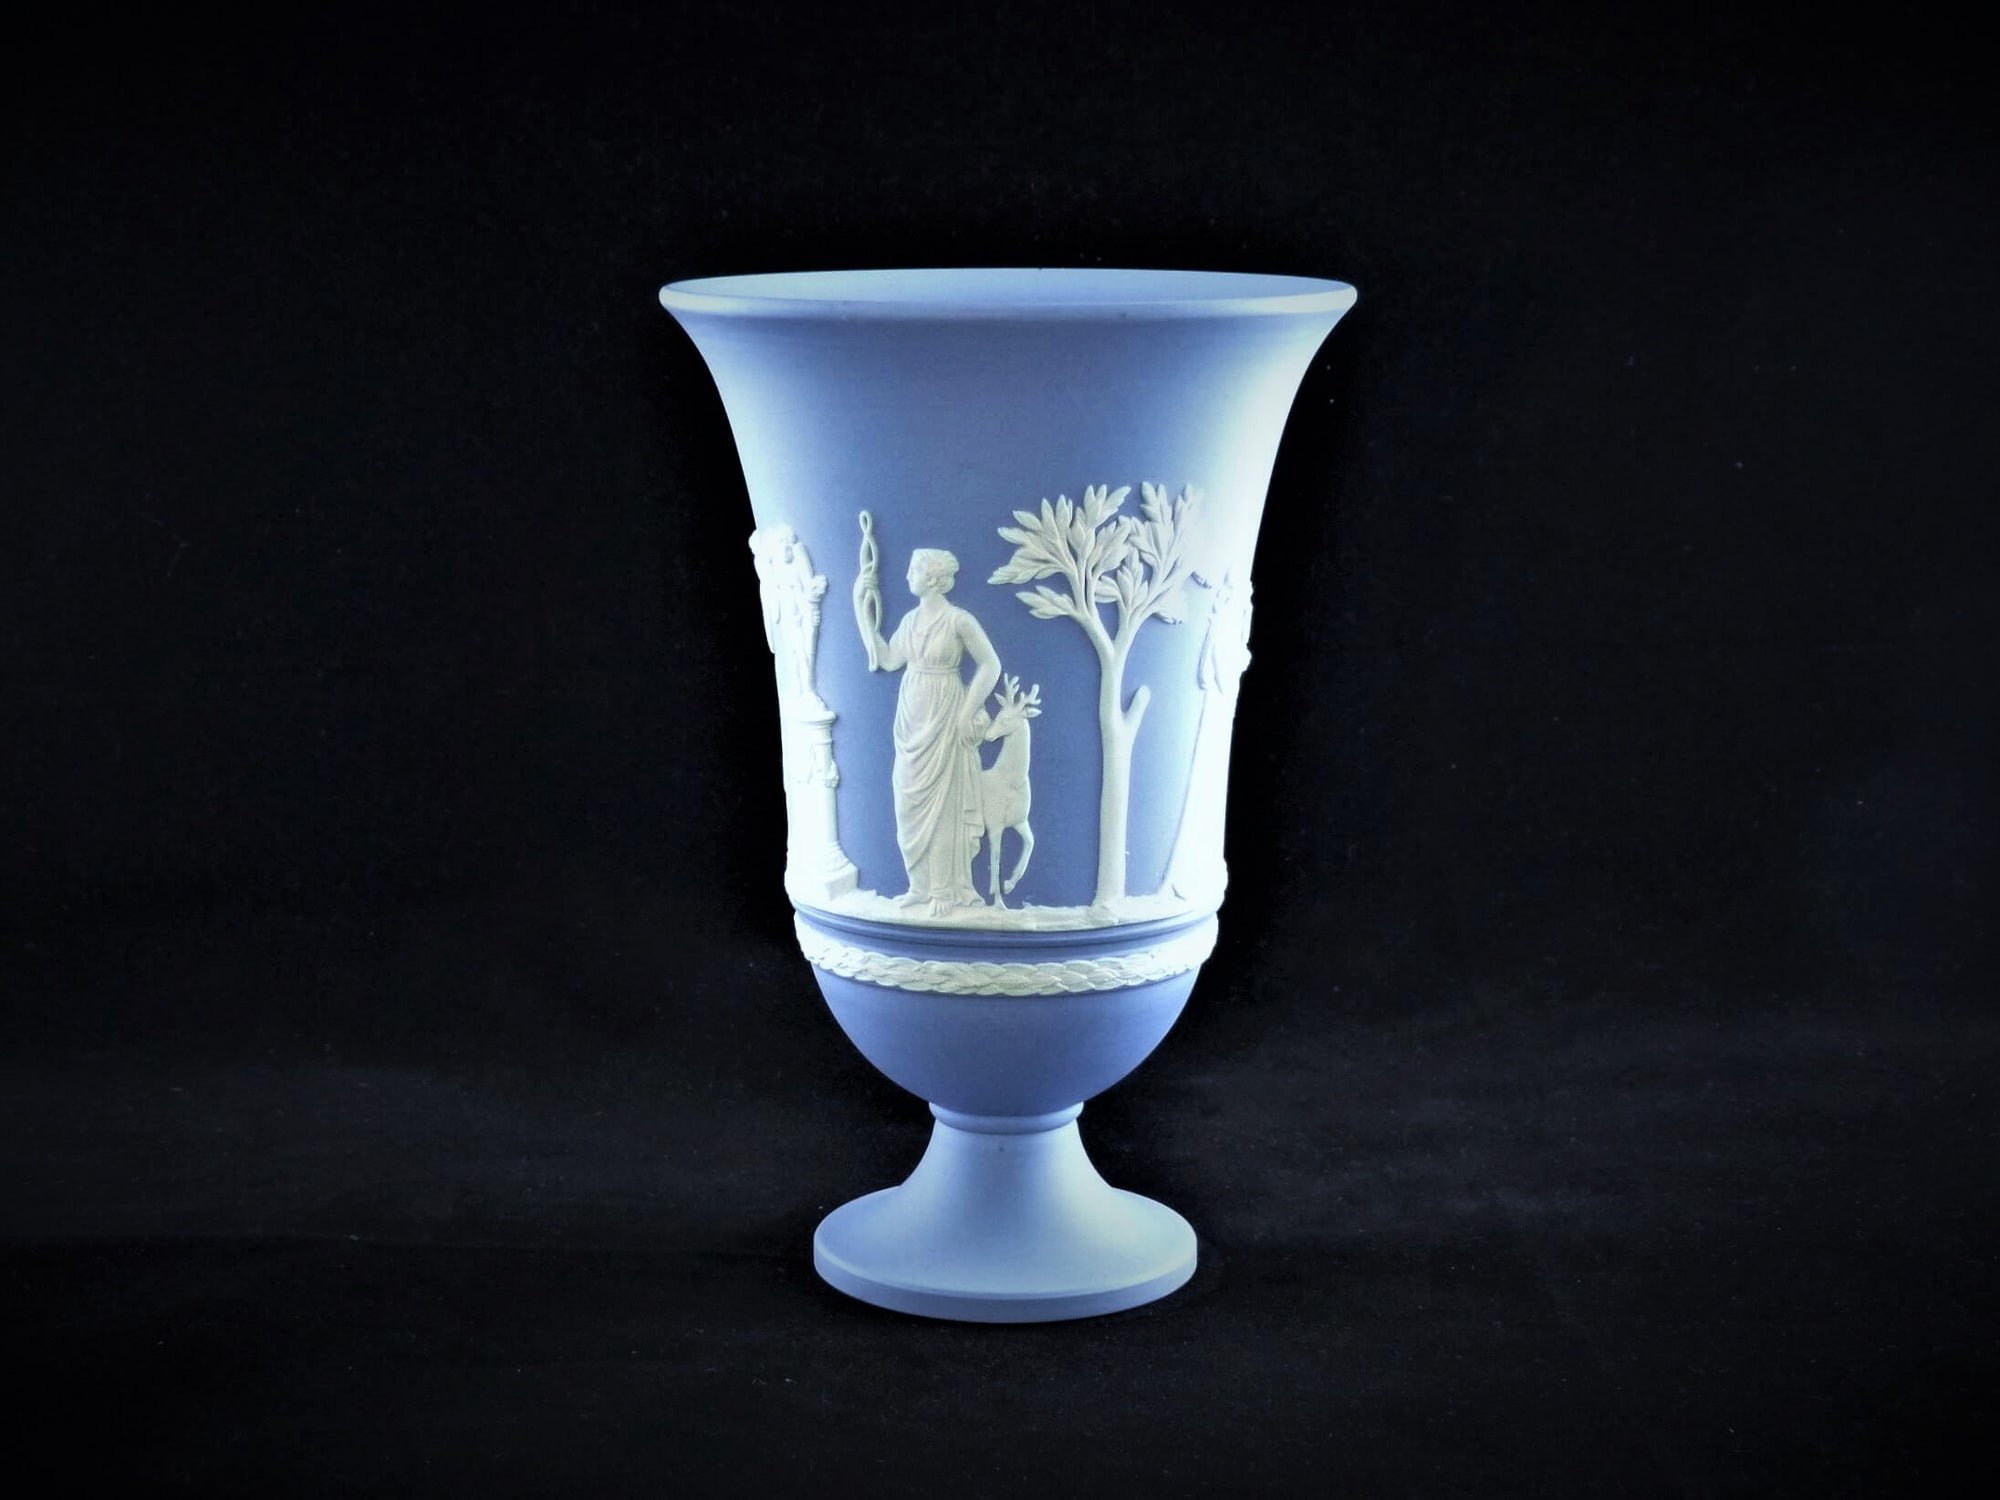 Blue Wedgwood Jasperware Vase, Decorative Ornament, Attractive Flower Vase